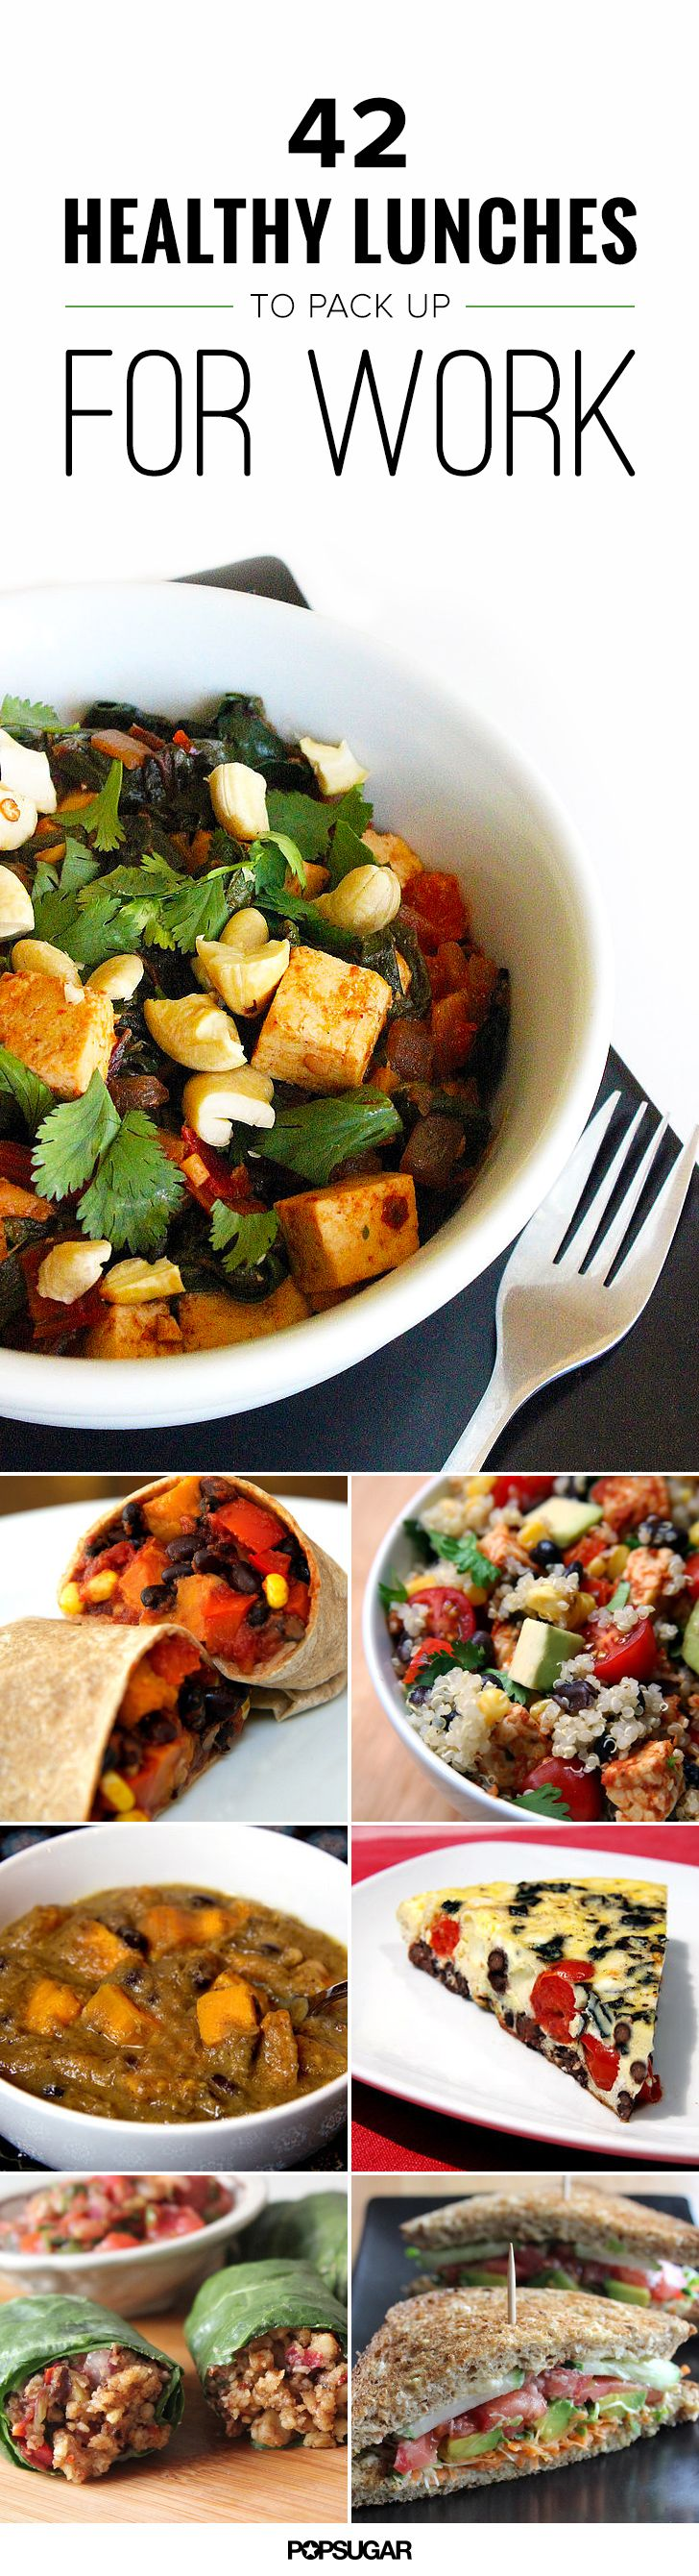 Healthy lunch recipes.